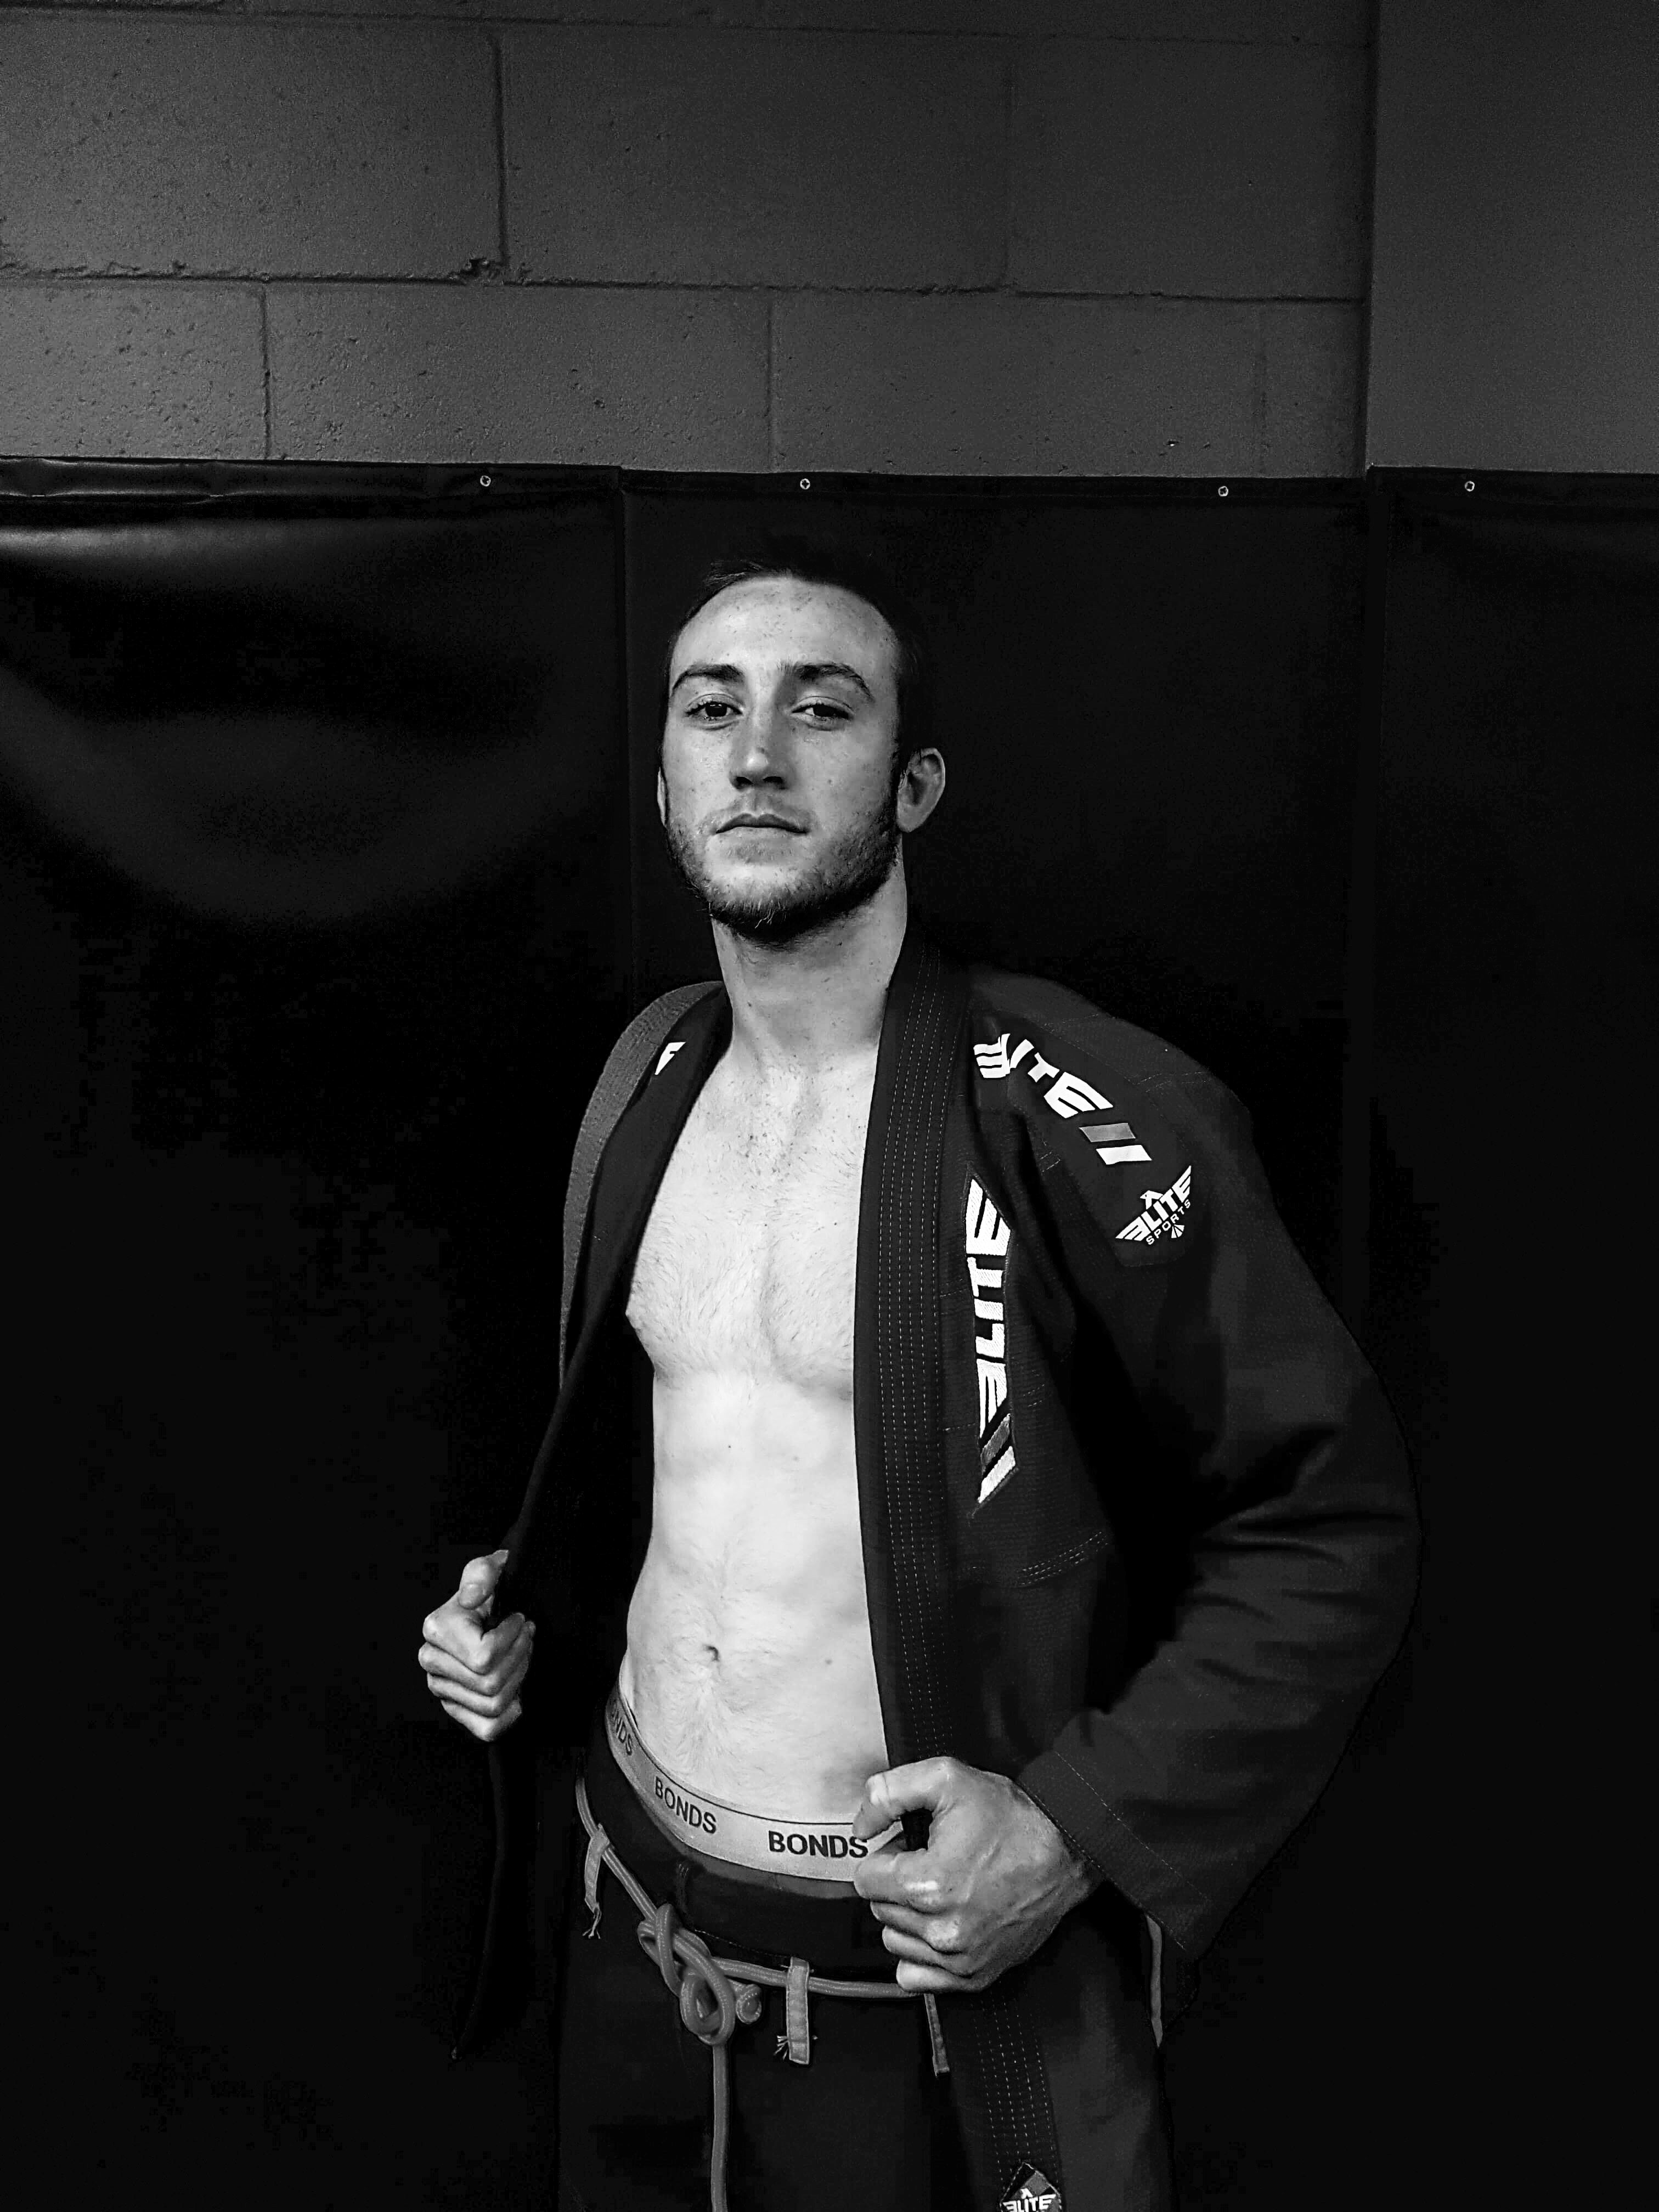 Elite Sports Team Elite Bjj Fighter Ashton Riddle-Johnston  Image8